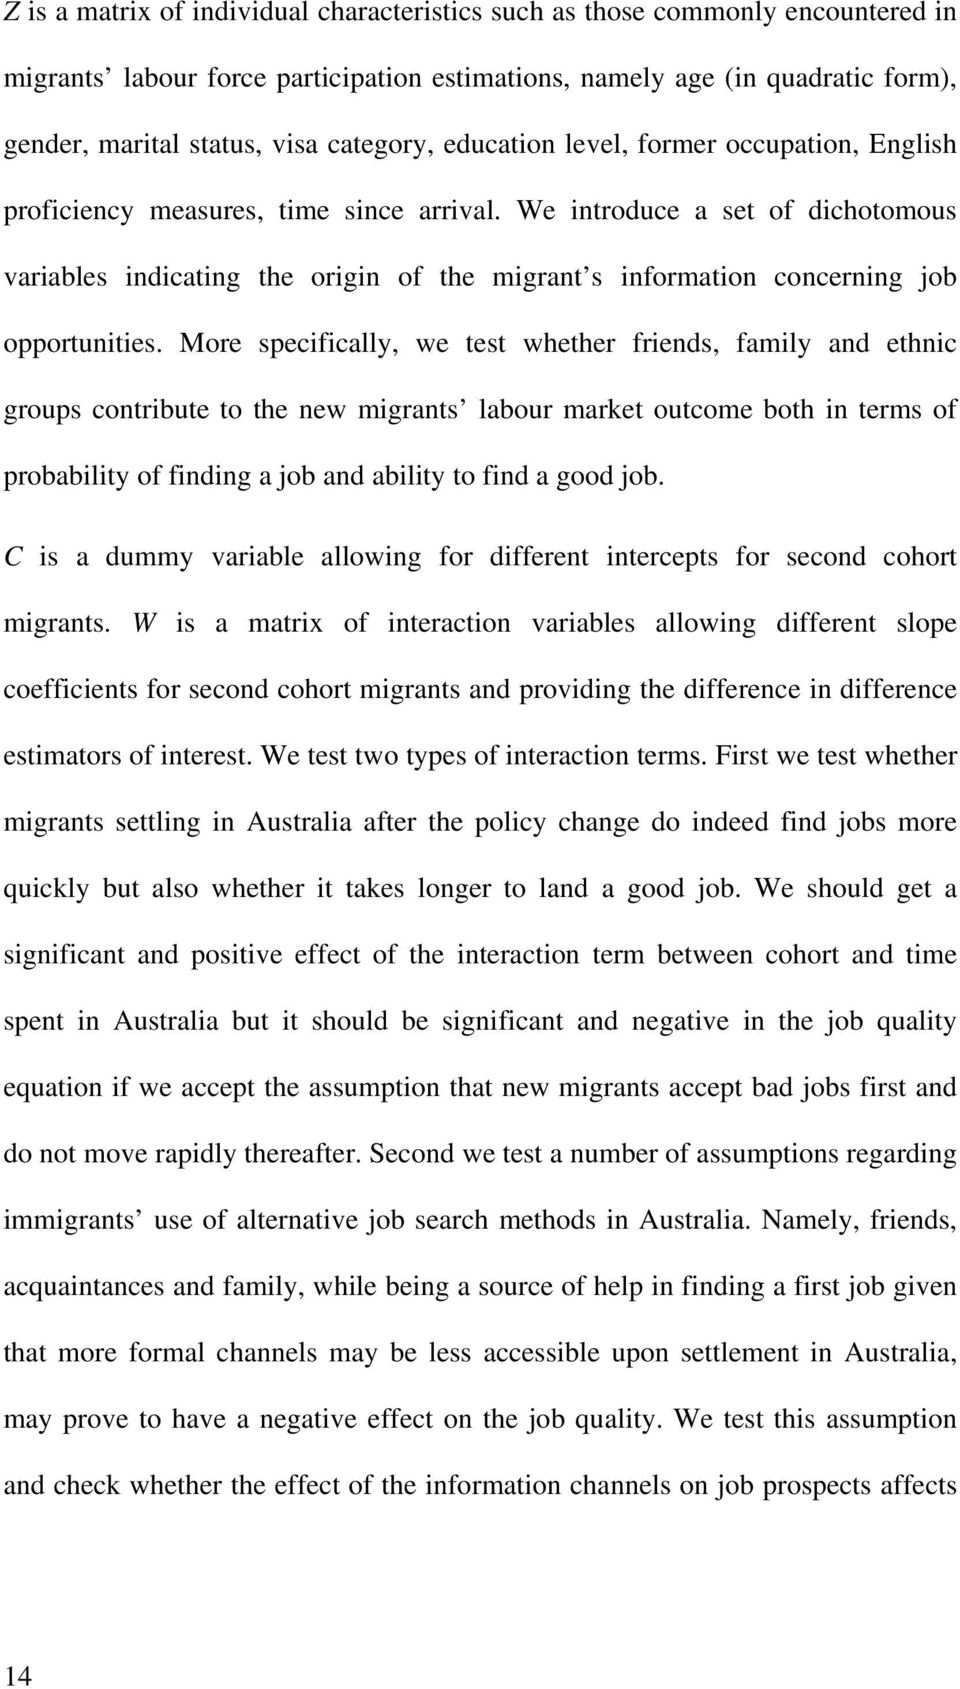 We introduce a set of dichotomous variables indicating the origin of the migrant s information concerning job opportunities.